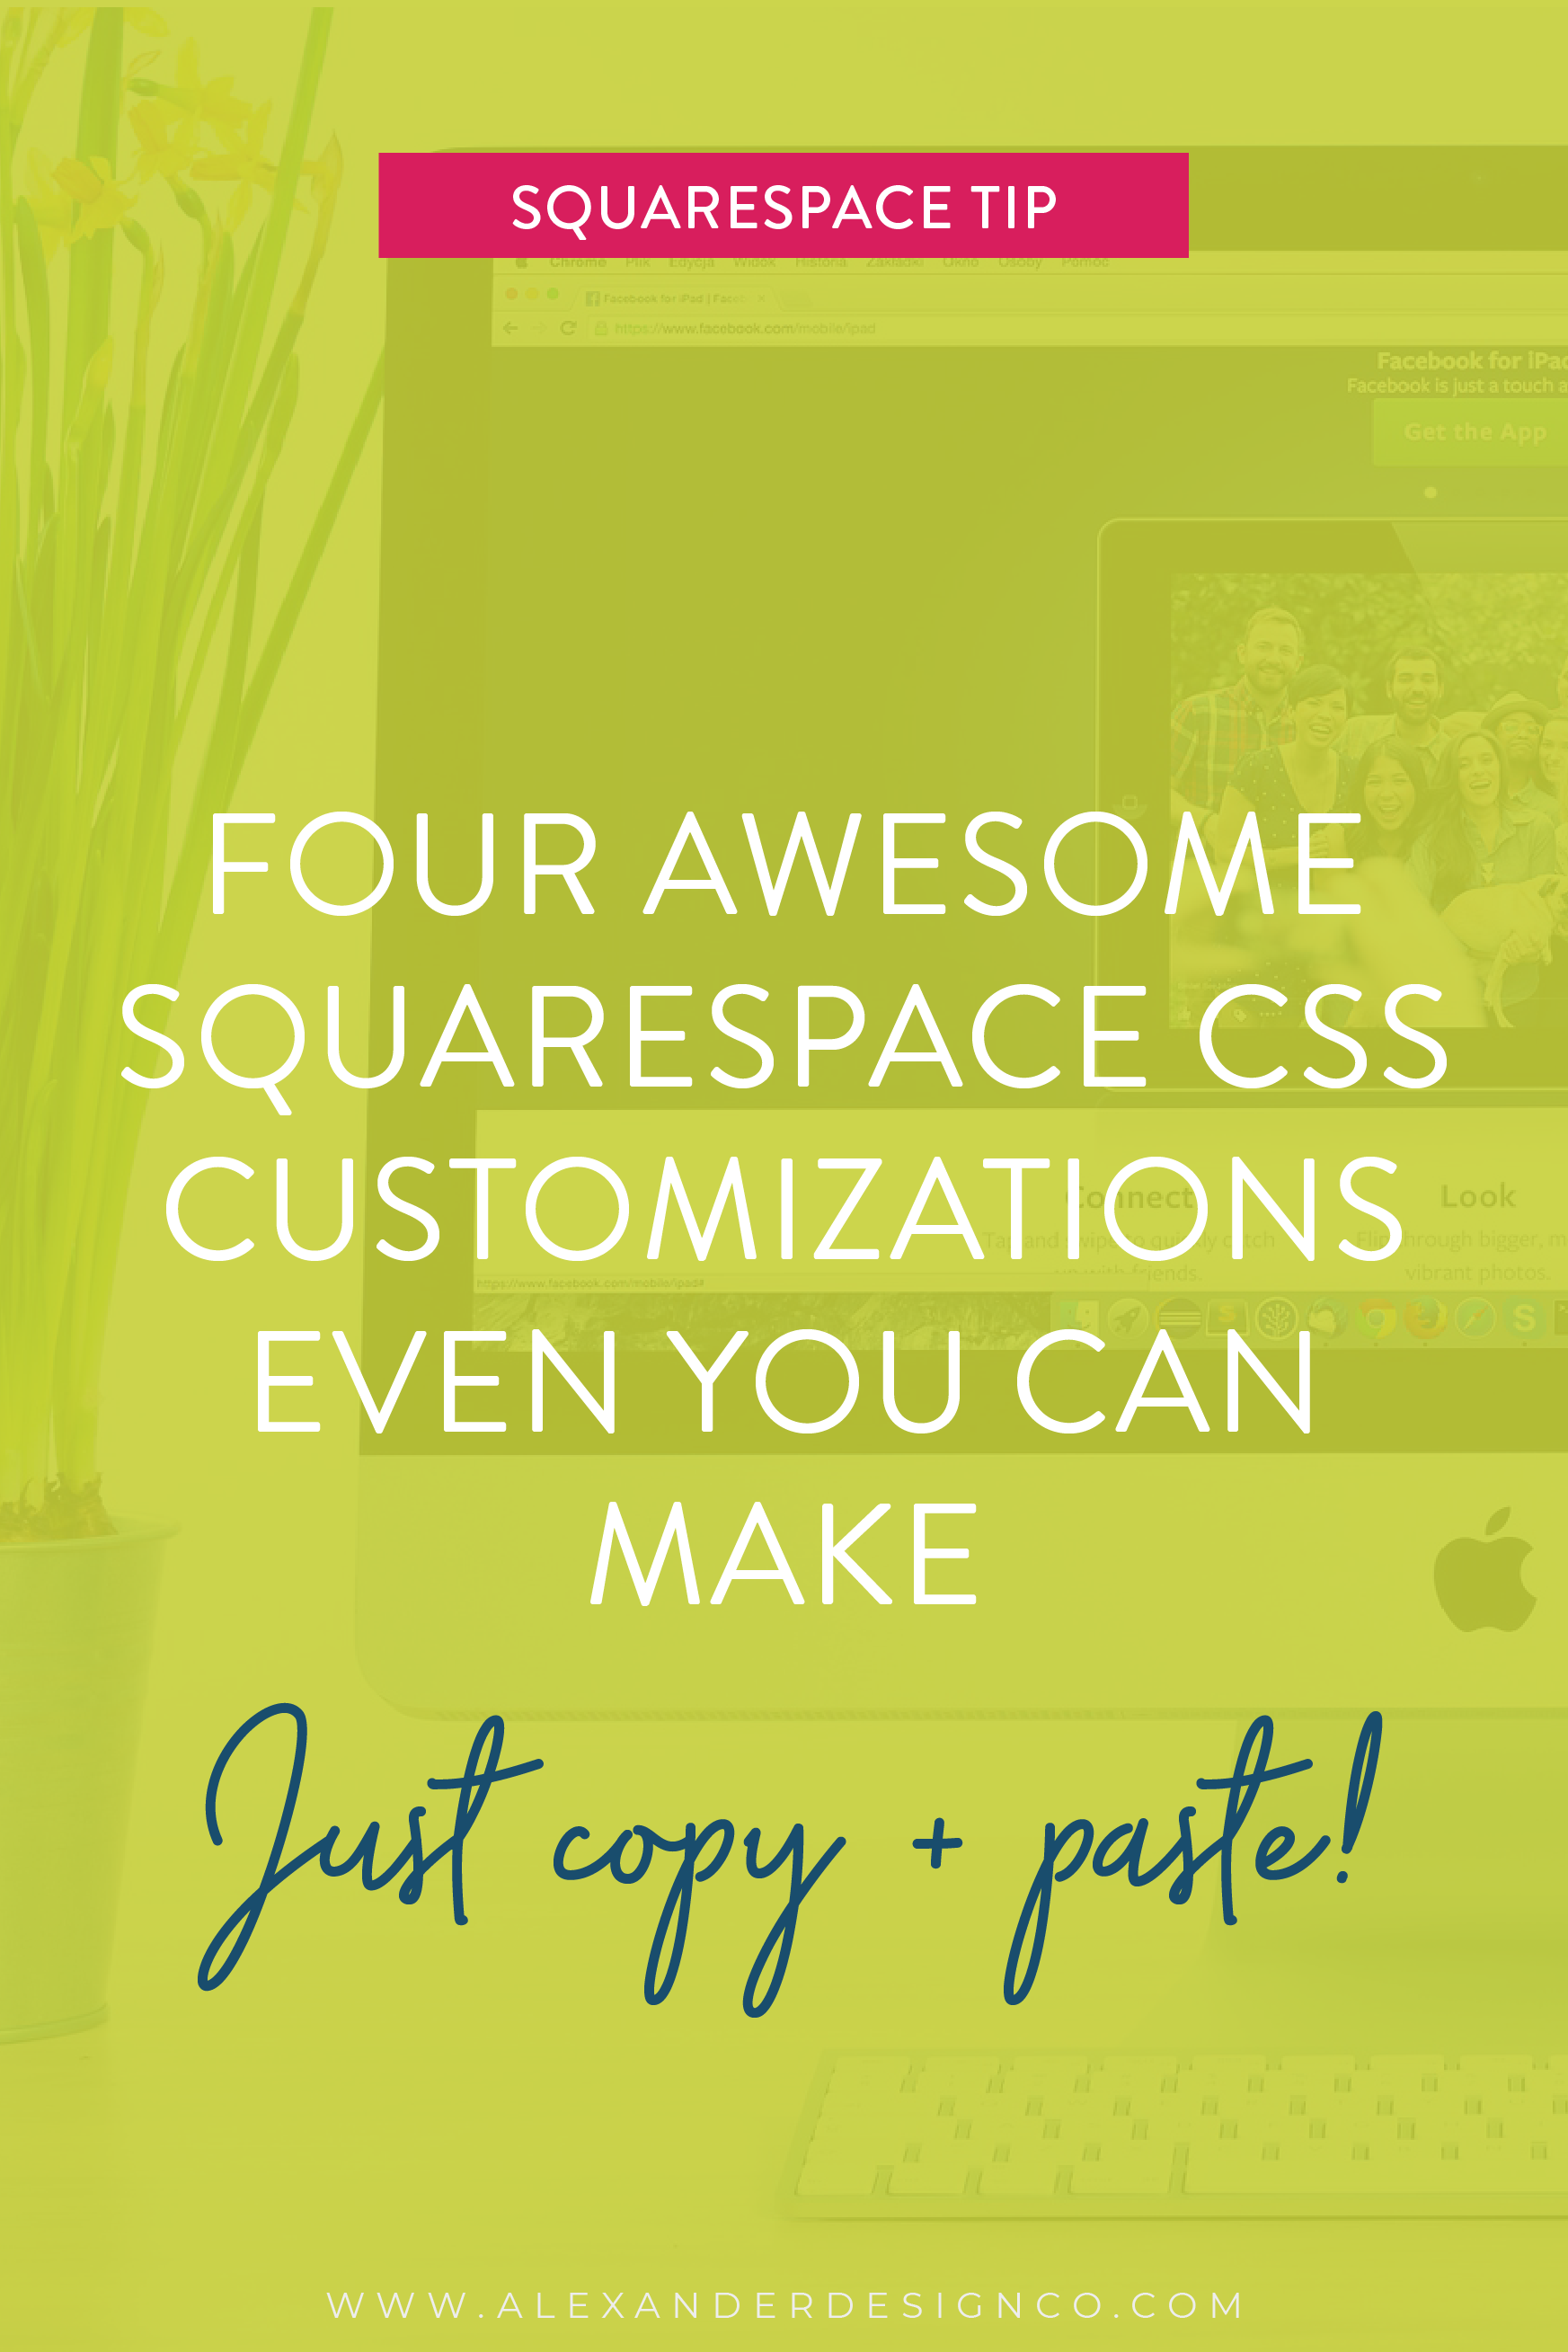 Four awesome Squarespace css customizations even you can make.